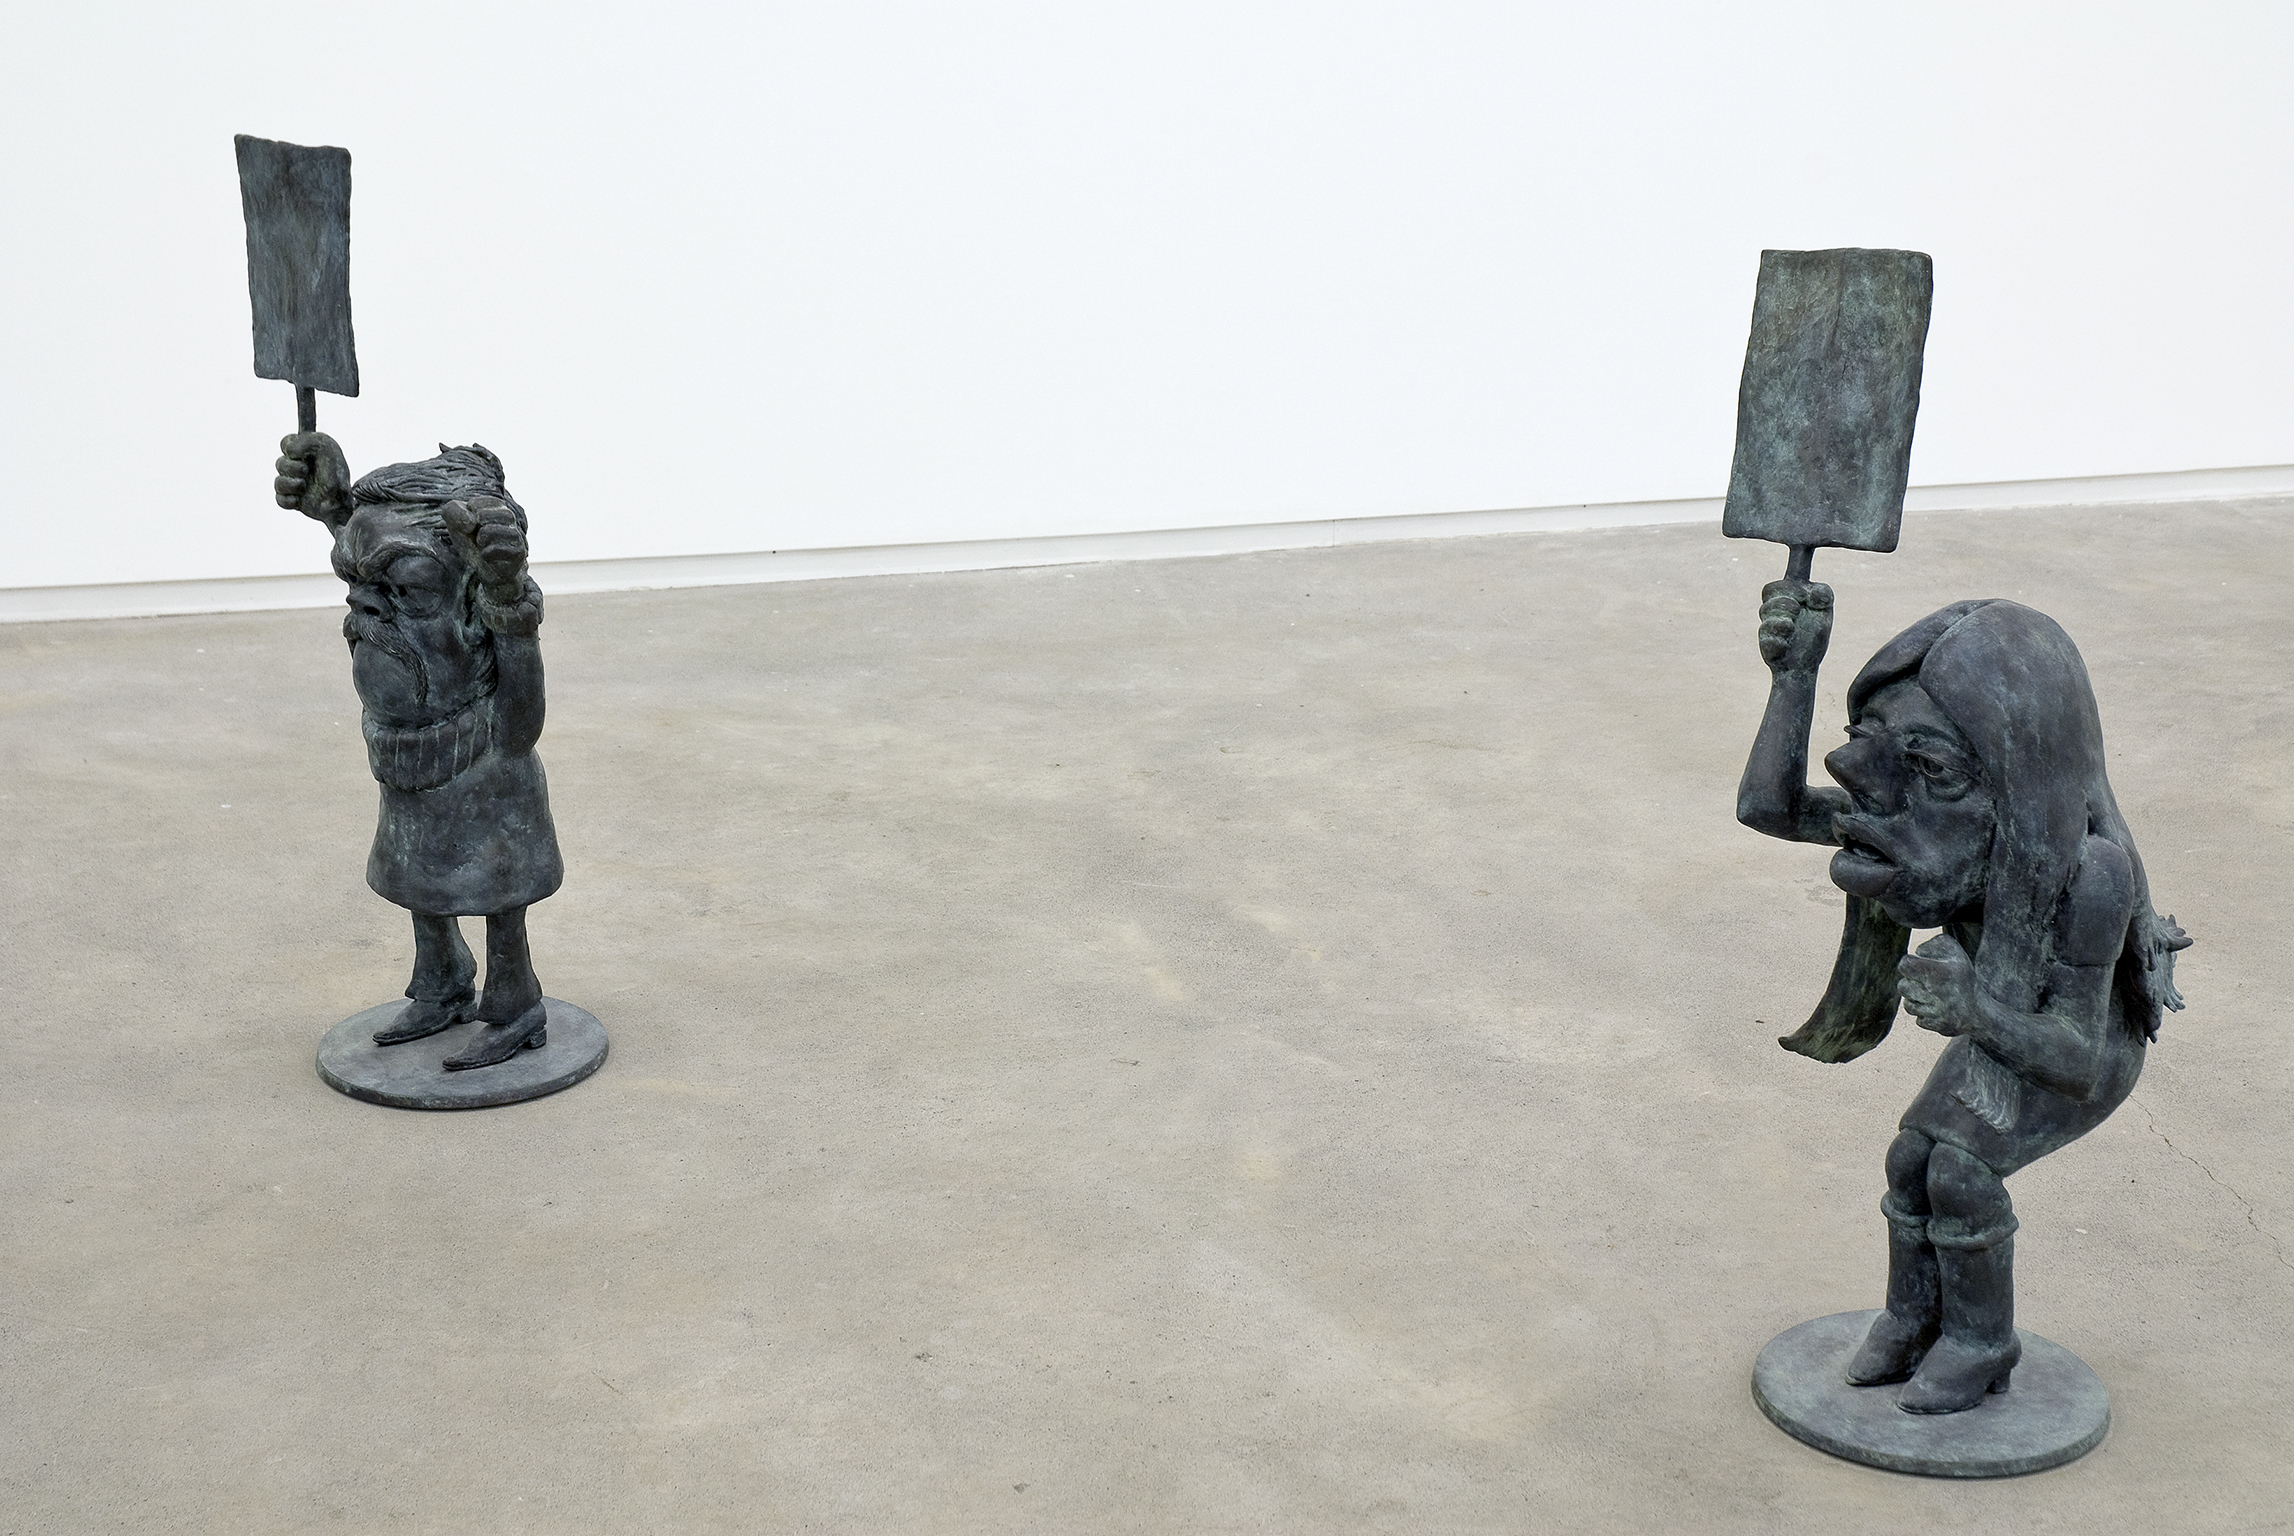 Alex Morrison, Proposal for a New Monument at Freedom Square, 2008, 2 cast bronze figures, 33 x 15 x 13 in. (83 x 37 x 33 cm), 32 x 10 x 15 in. (80 x 25 x 37 cm) by